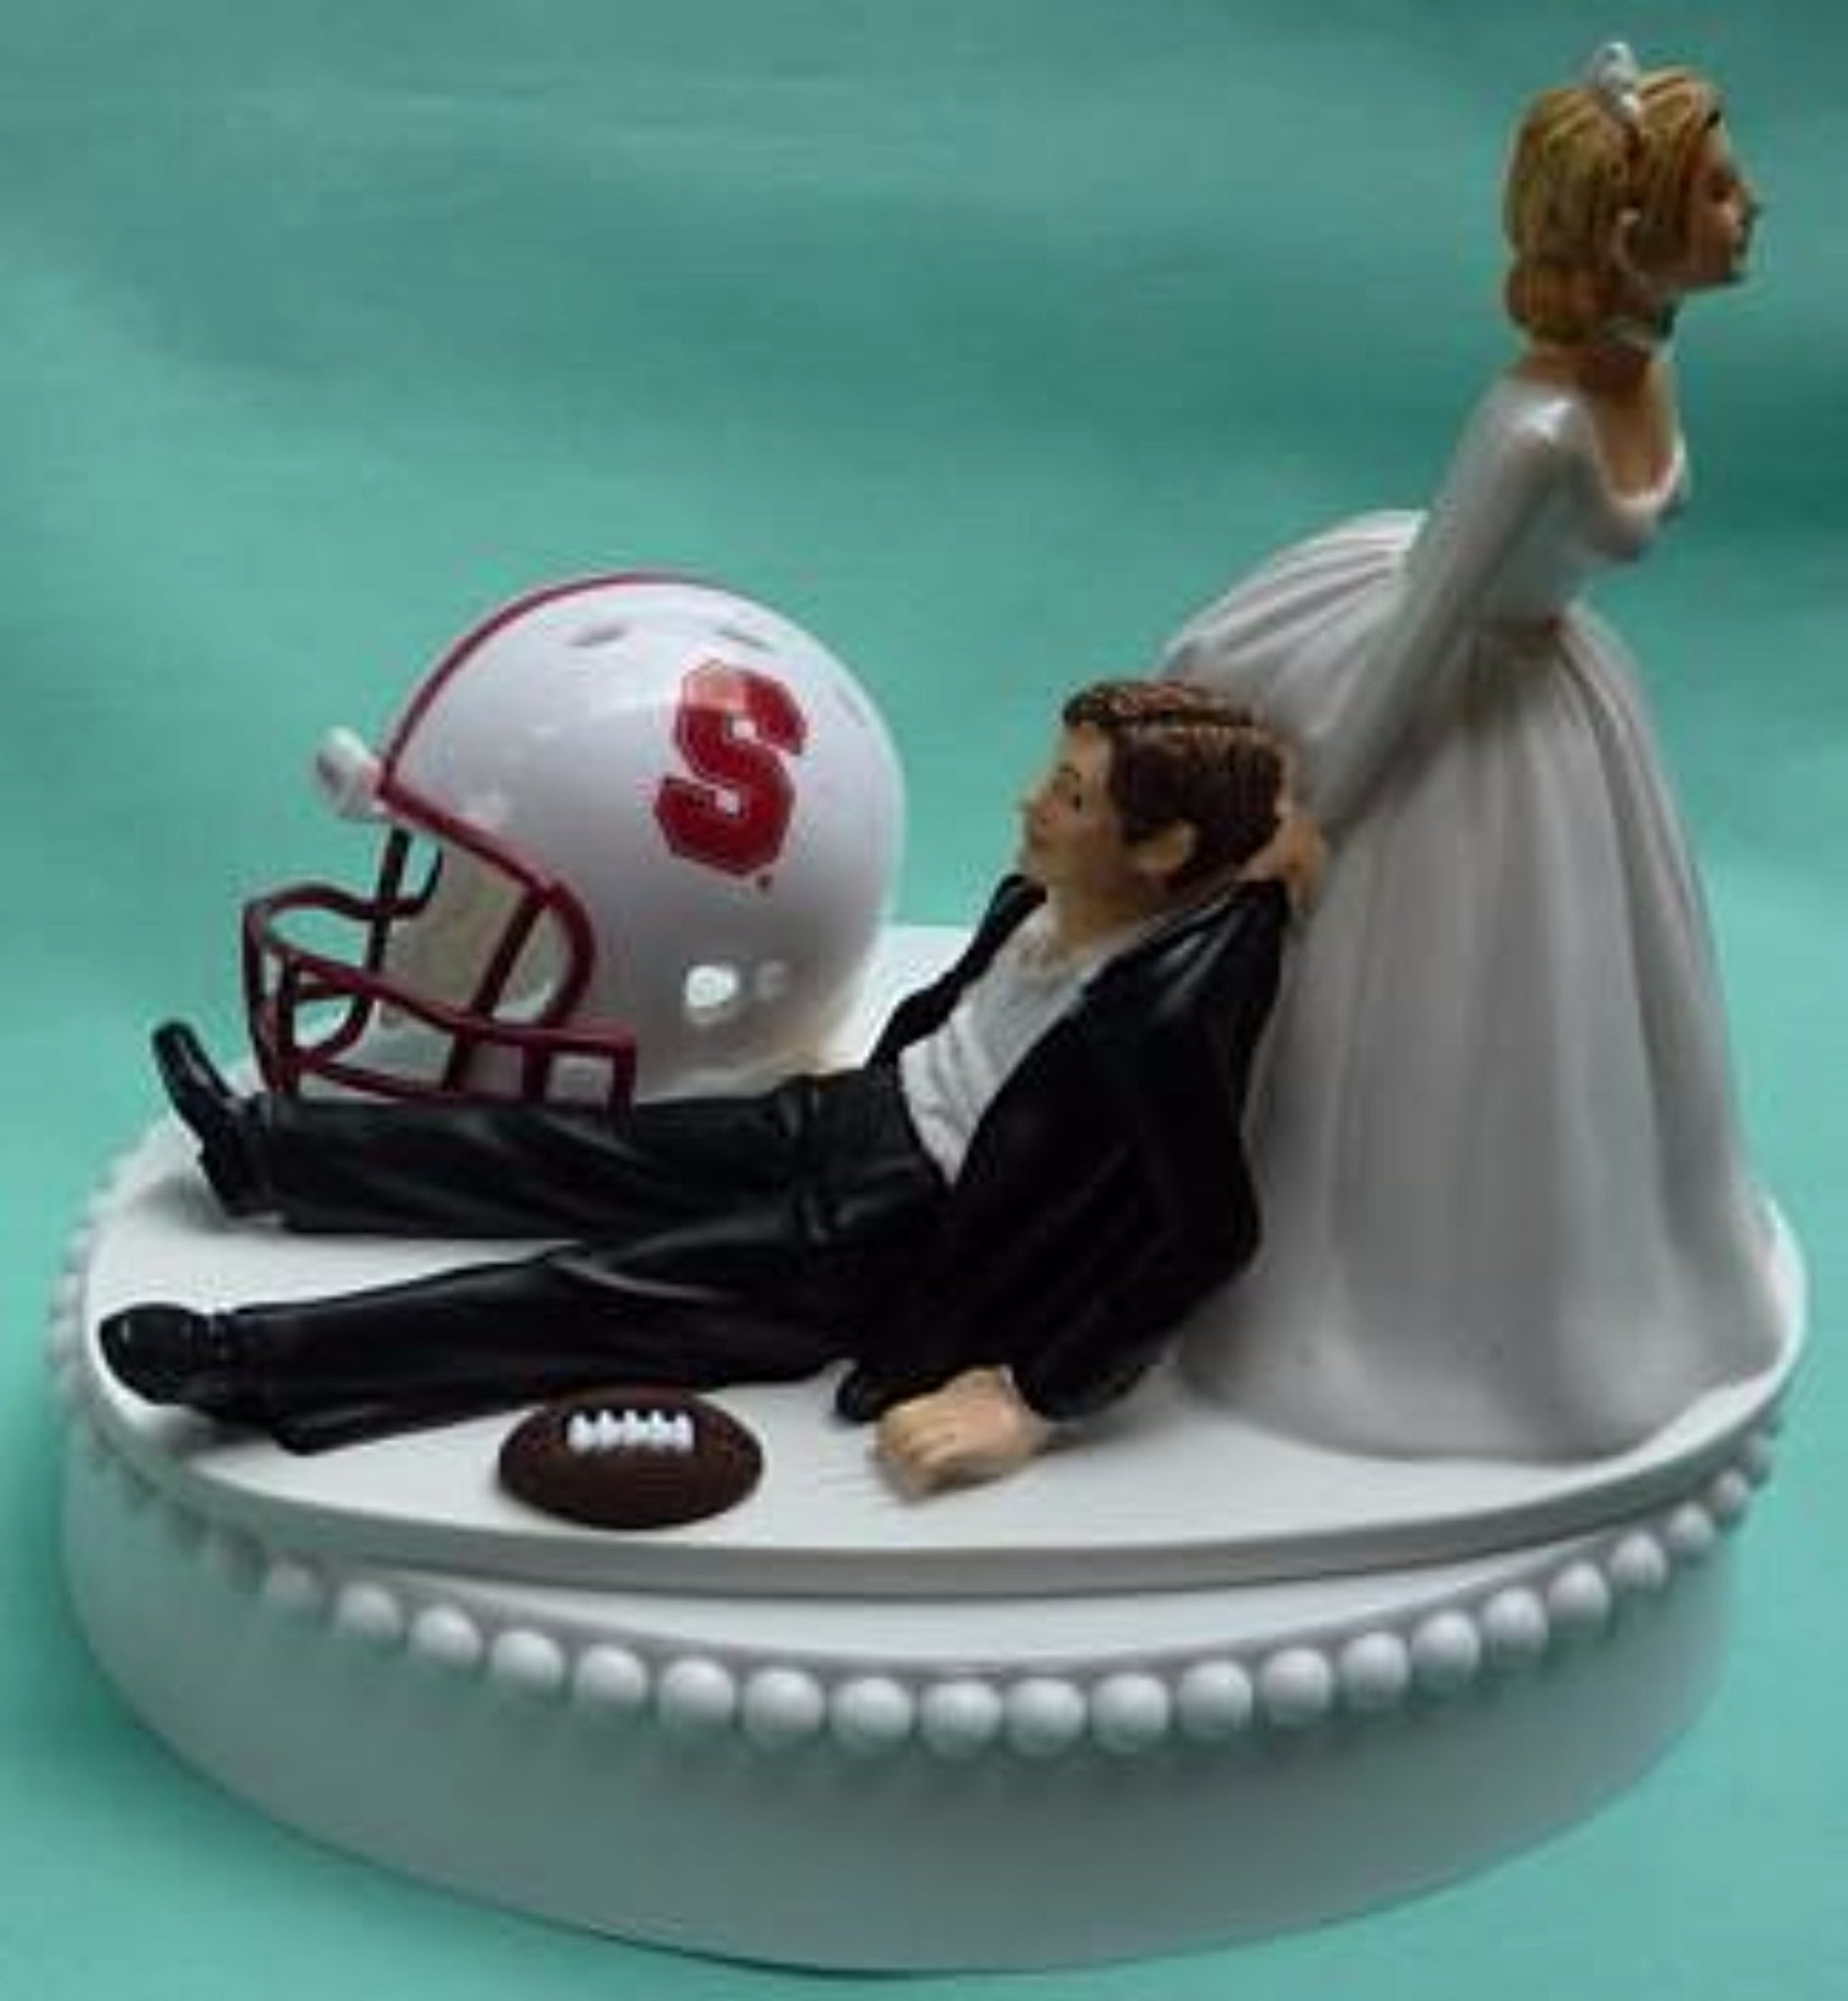 Stanford University wedding cake topper Cardinal football groom's cake top humorous bride dragging groom funny sports fans reception Fun Wedding Things